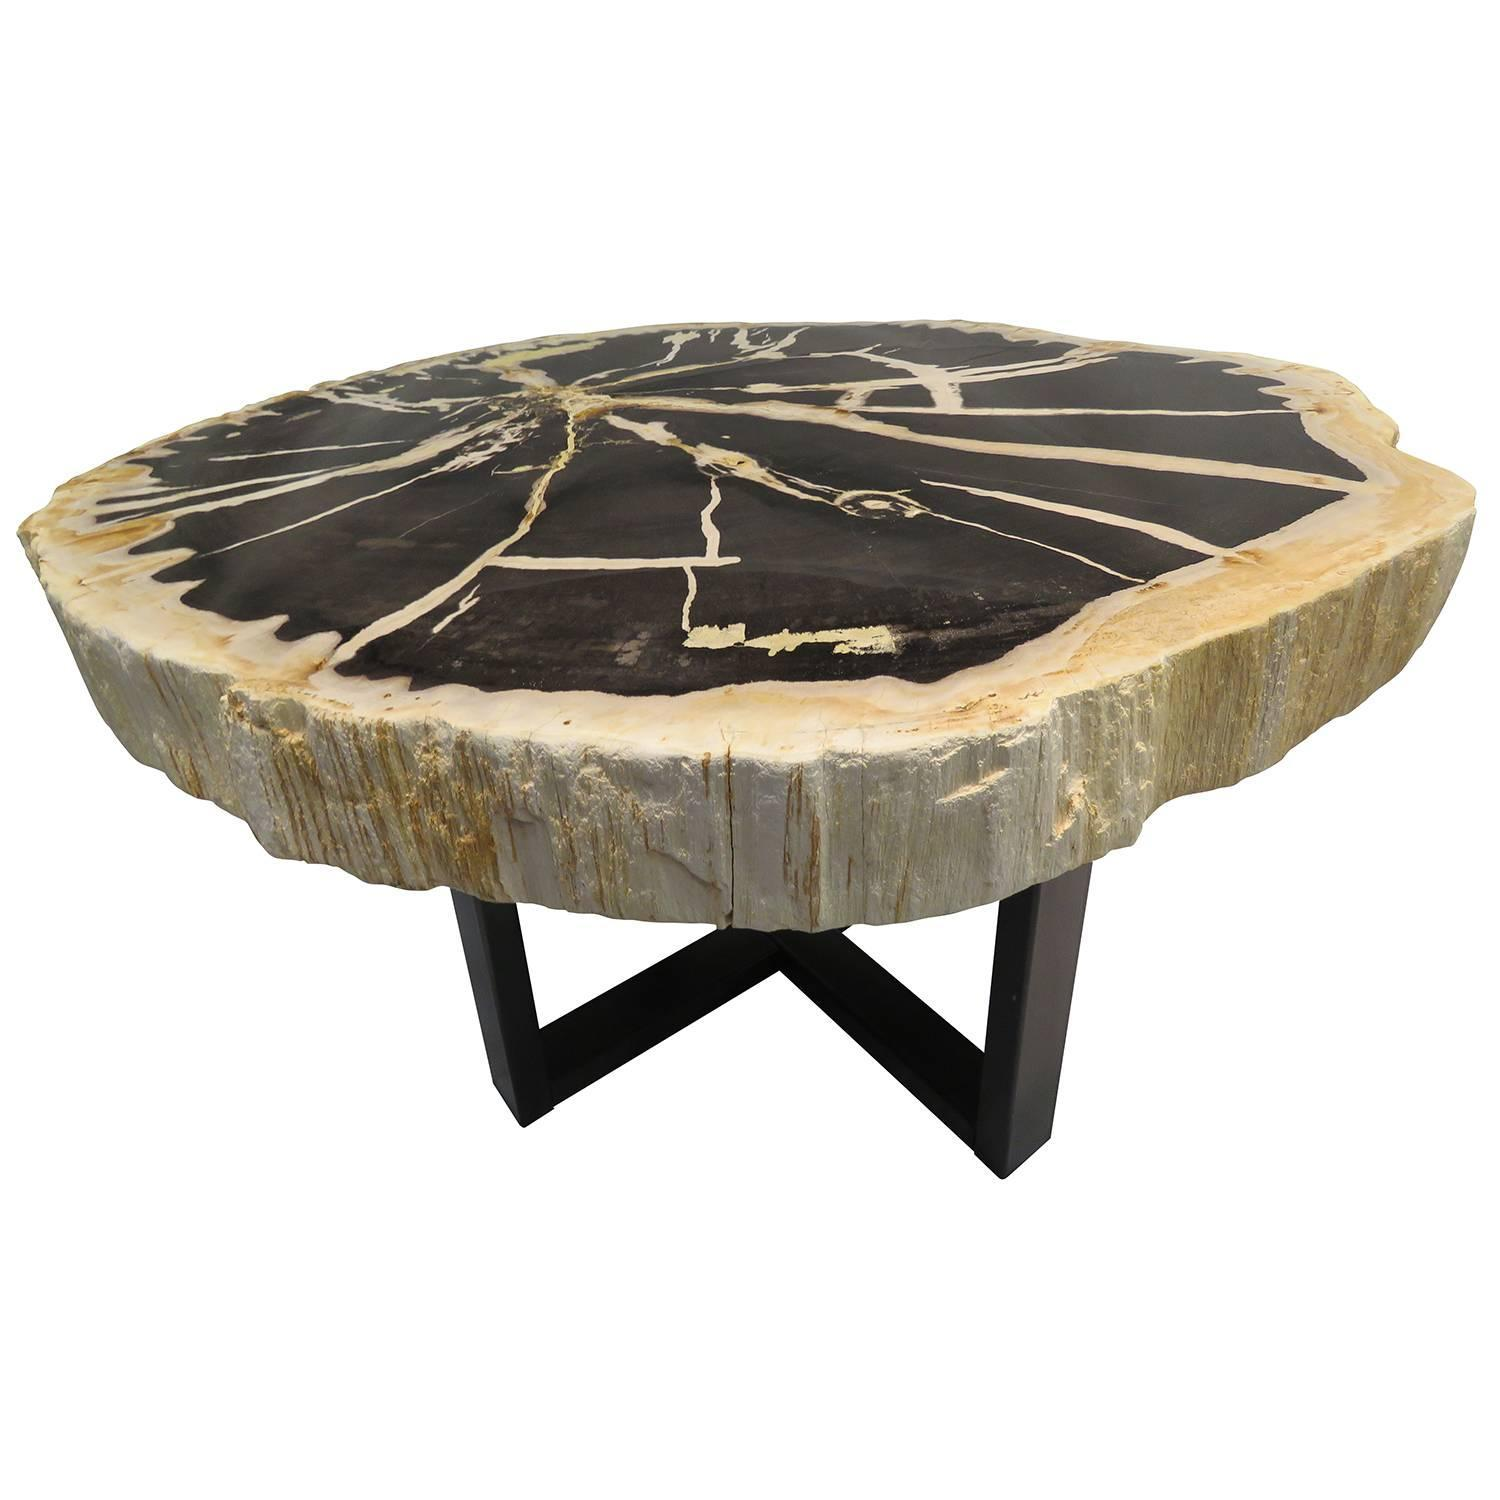 Petrified Wood Tables 175 For Sale at 1stdibs